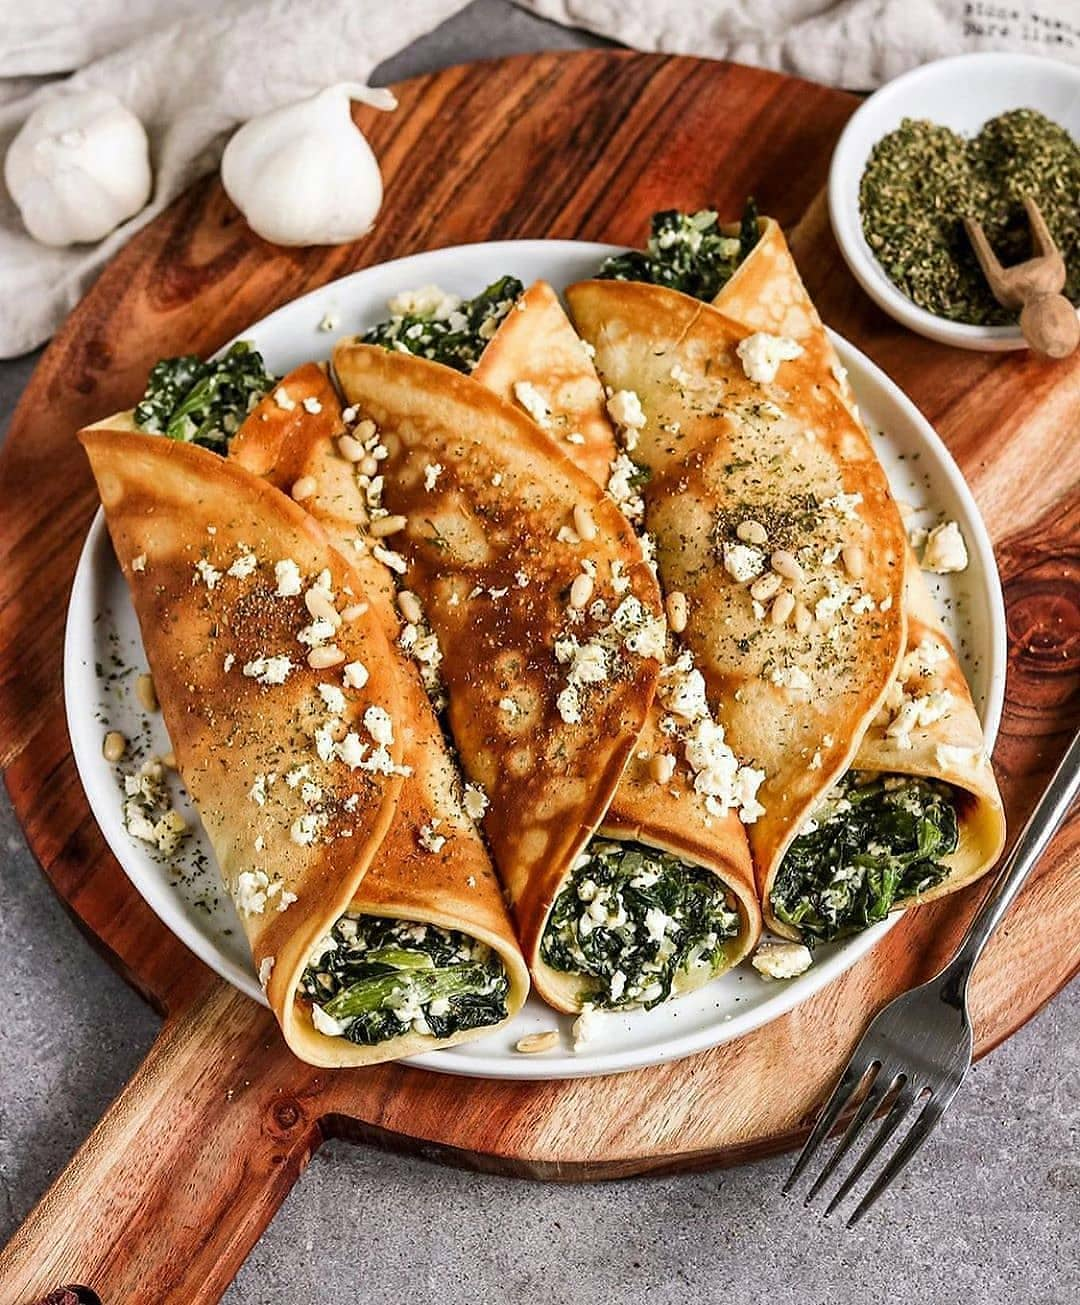 vegan oven baked filled crepes with spinach and feta by bya display image  8a414a95